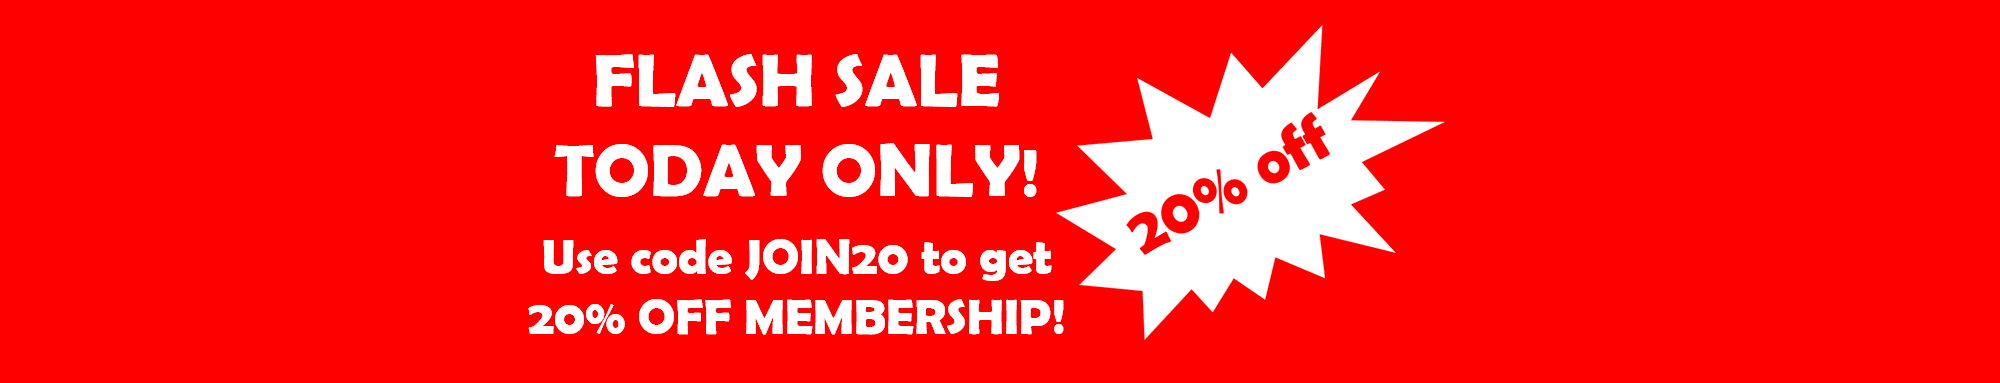 20% off membership with code JOIN20 today only